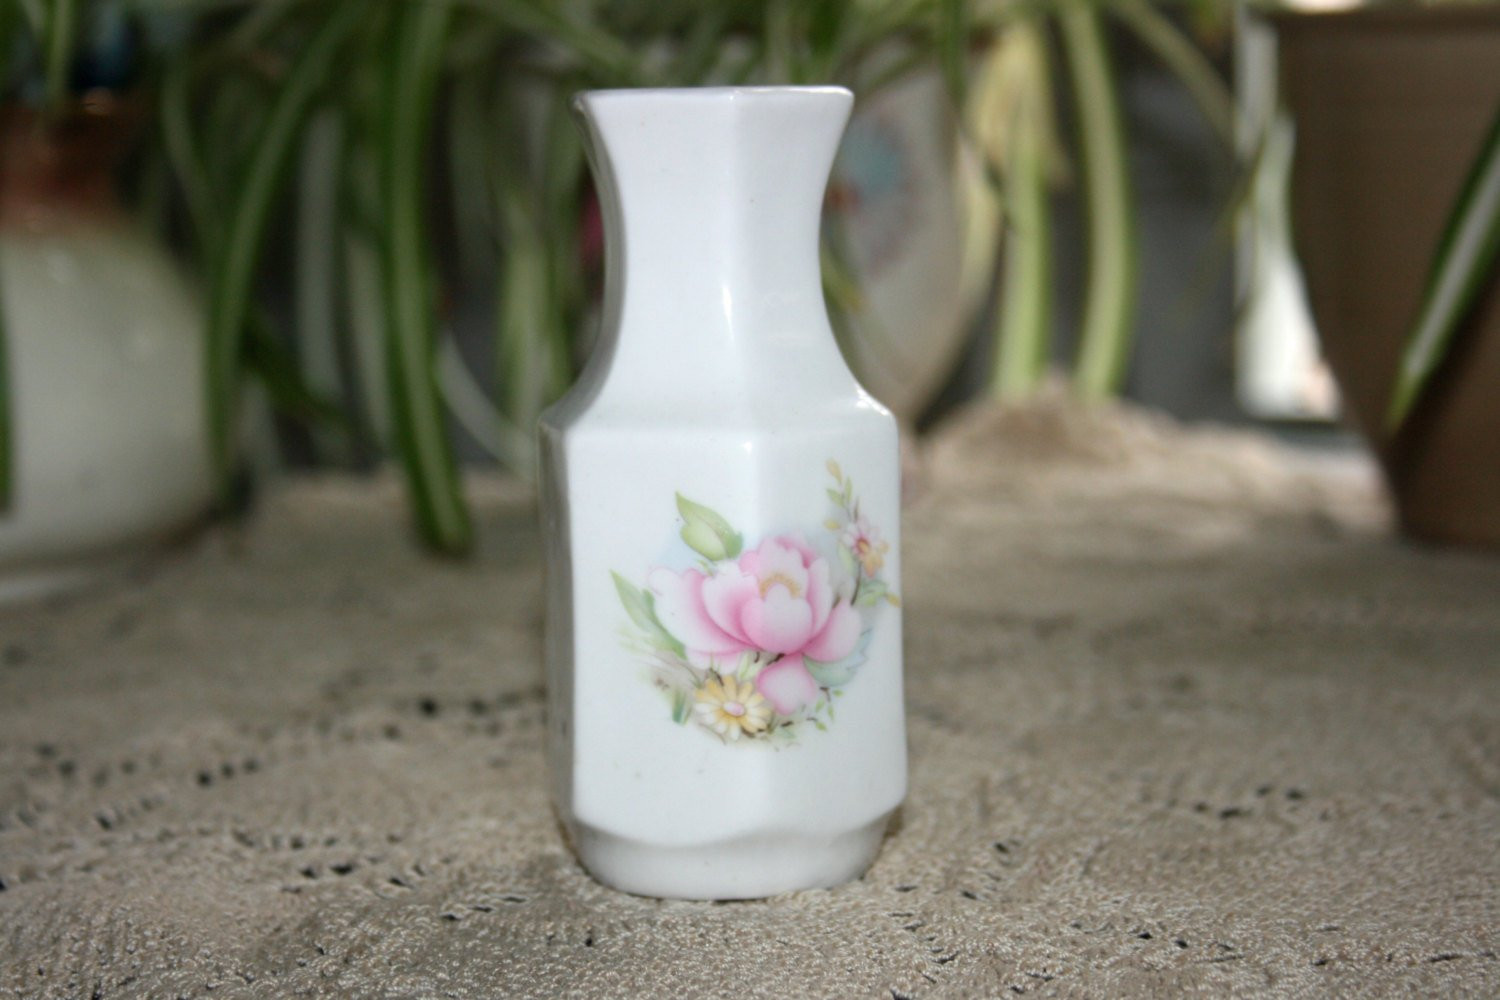 Chinese Flower Vase Porcelain Of Vintage Miniature Bud Vase Staffordshire Bone China Hexagon Made In Intended for Vintage Miniature Bud Vase Staffordshire Bone China Hexagon Made In England Flower Porcelain Vase Rose Floral